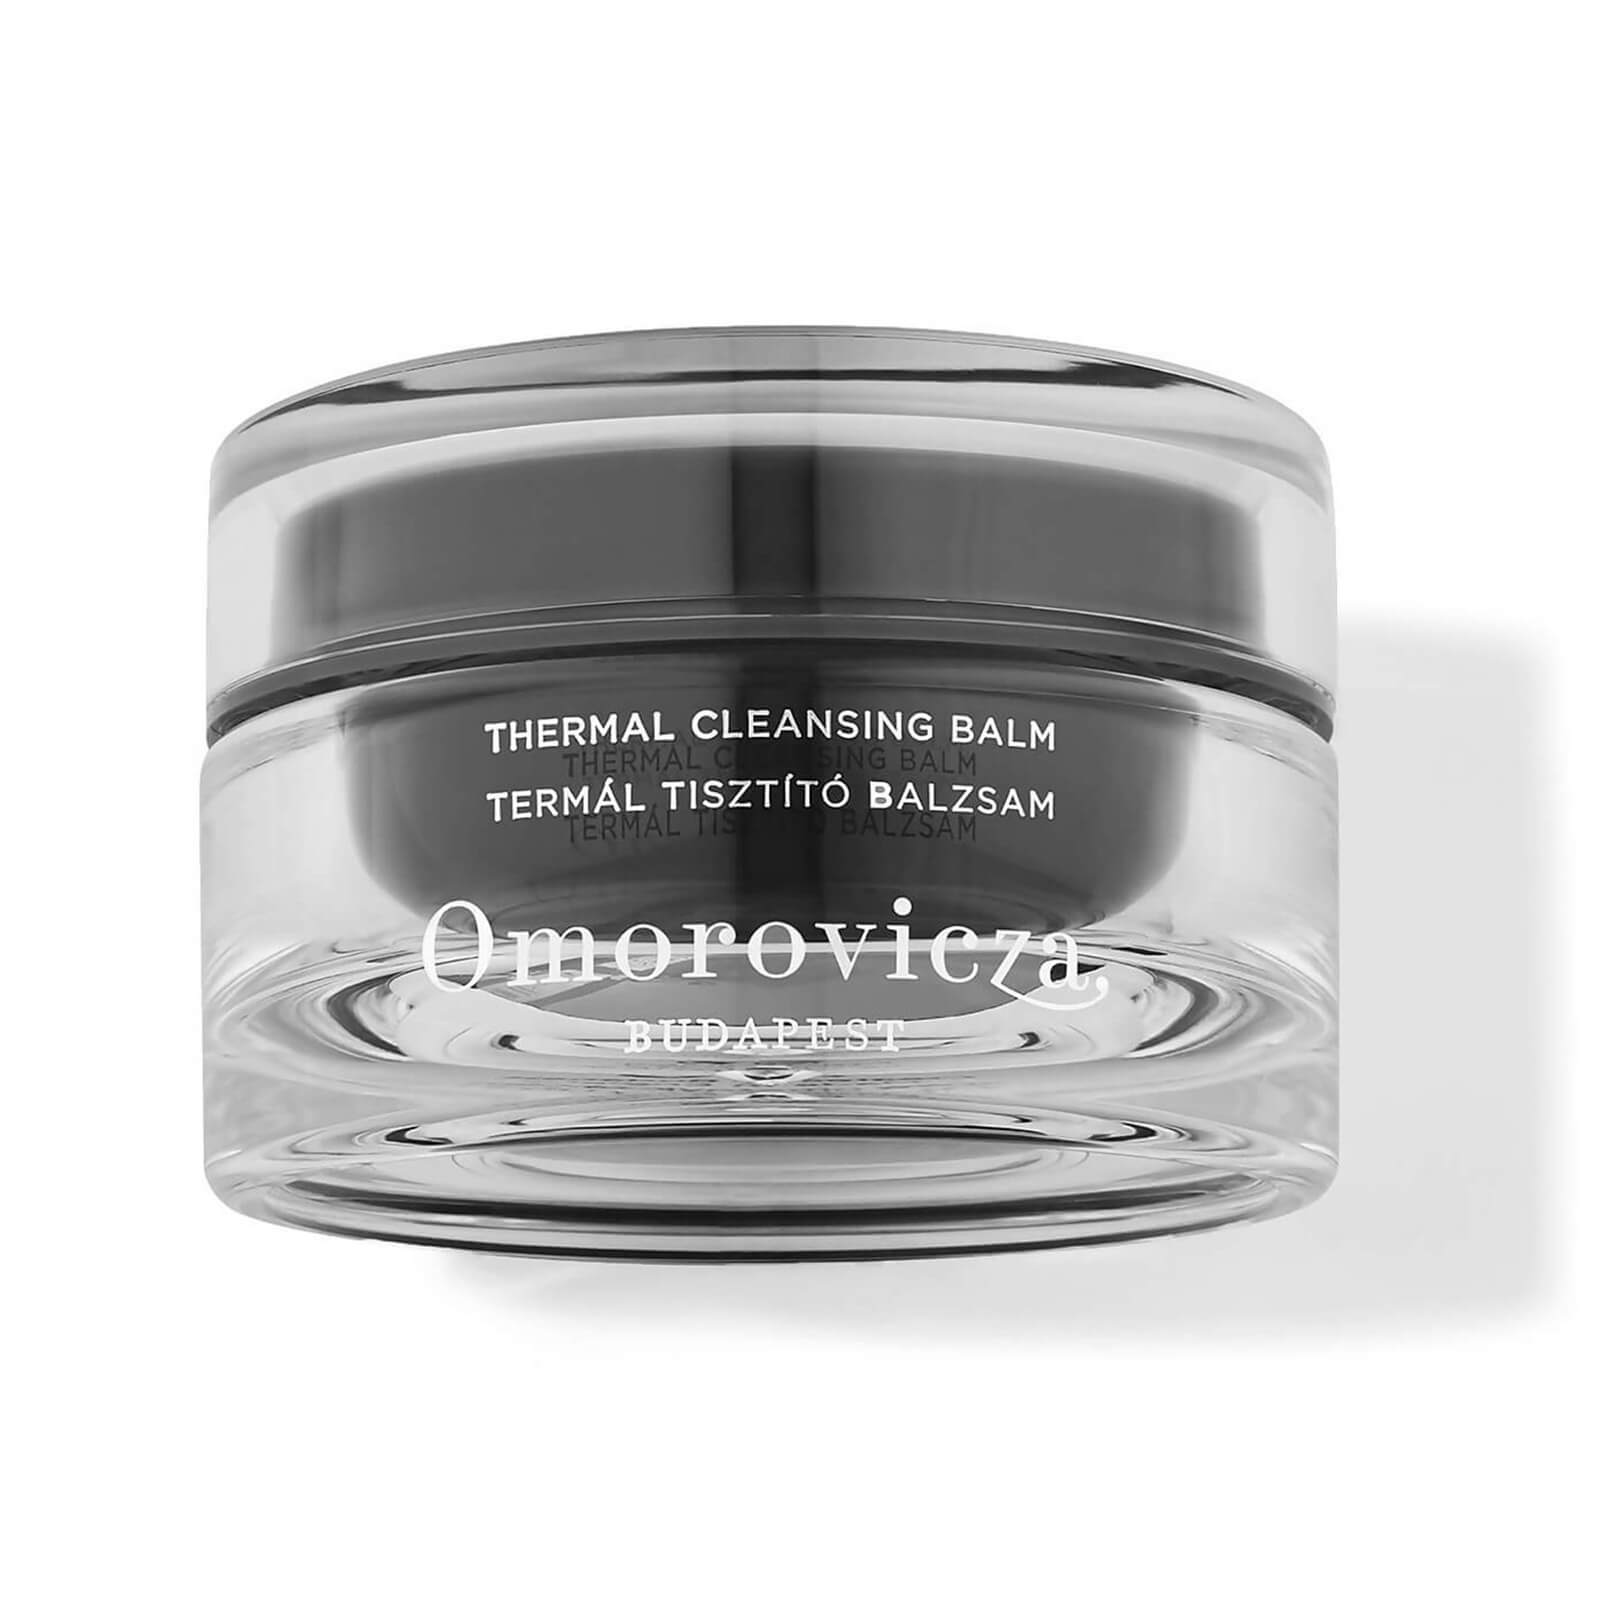 Omorovicza Thermal Cleansing Balm Supersize -100ml  (Worth £92.00)